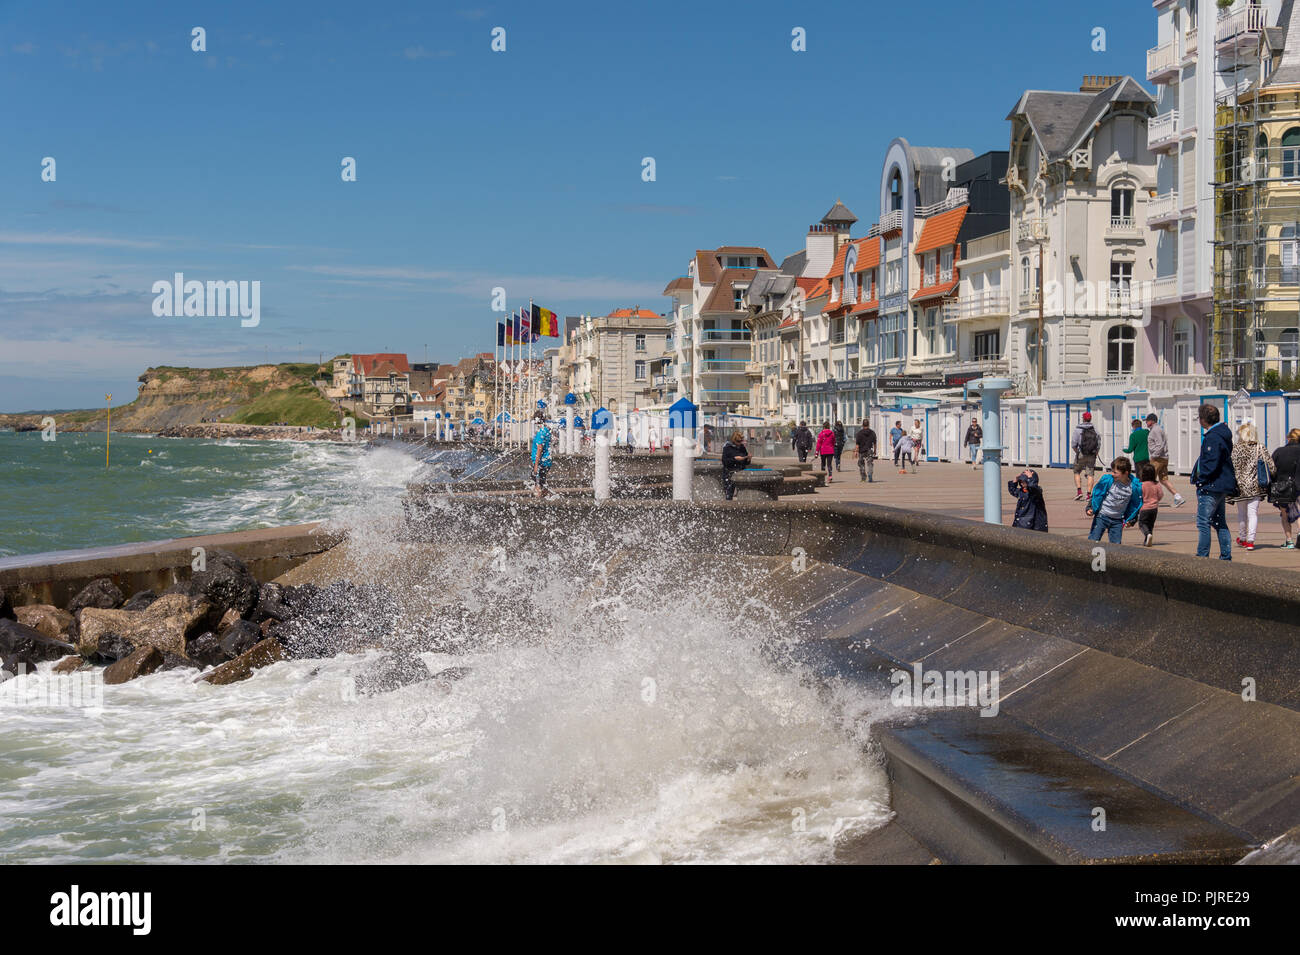 Wimereux, France - 16 June 2018: People walking on the sea front promenade as waves are hitting the sea wall. - Stock Image